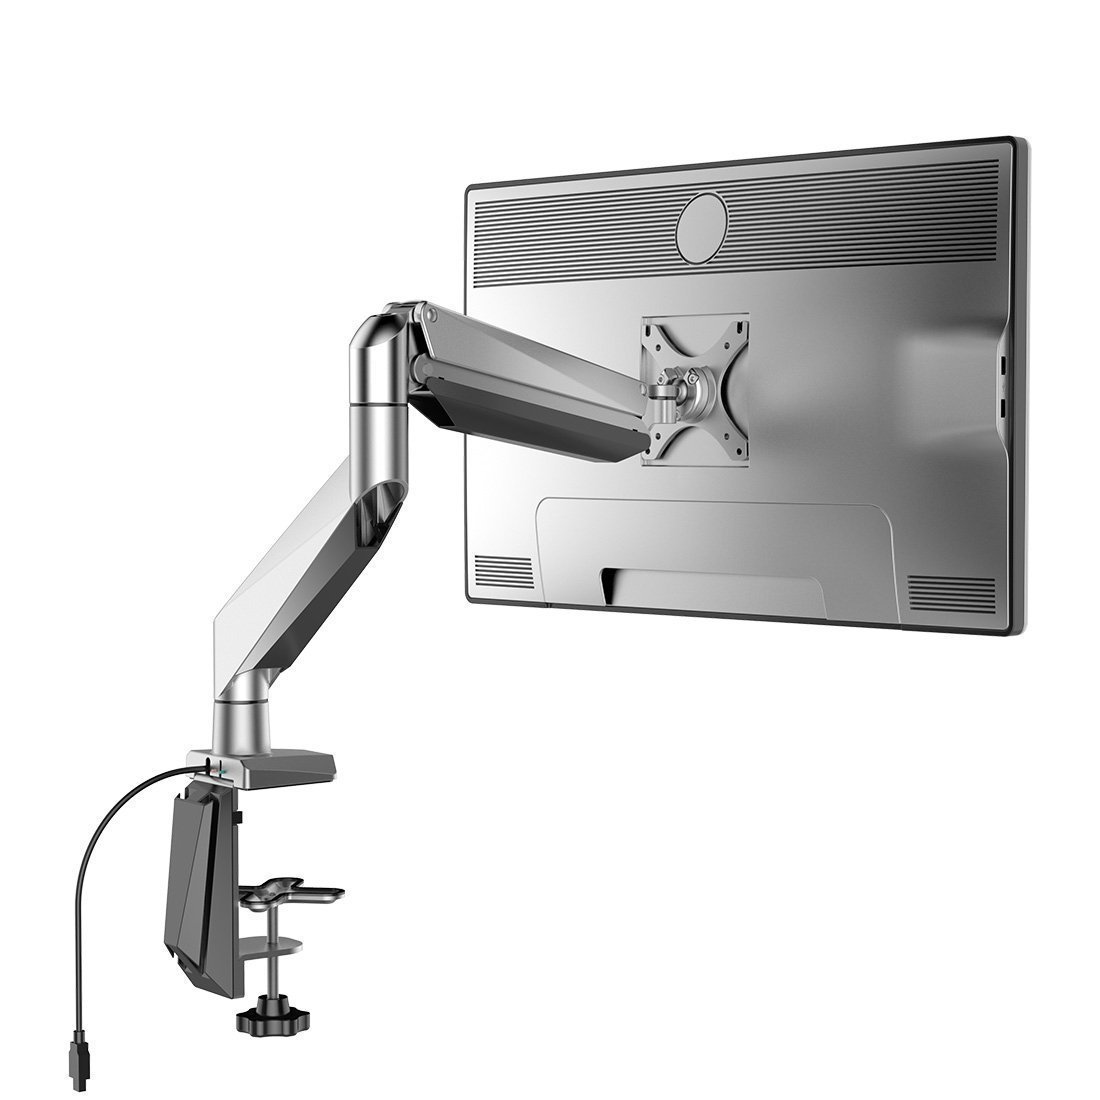 Loctek D7r Swivel Gas Spring Single Lcd Arm Stand Monitor